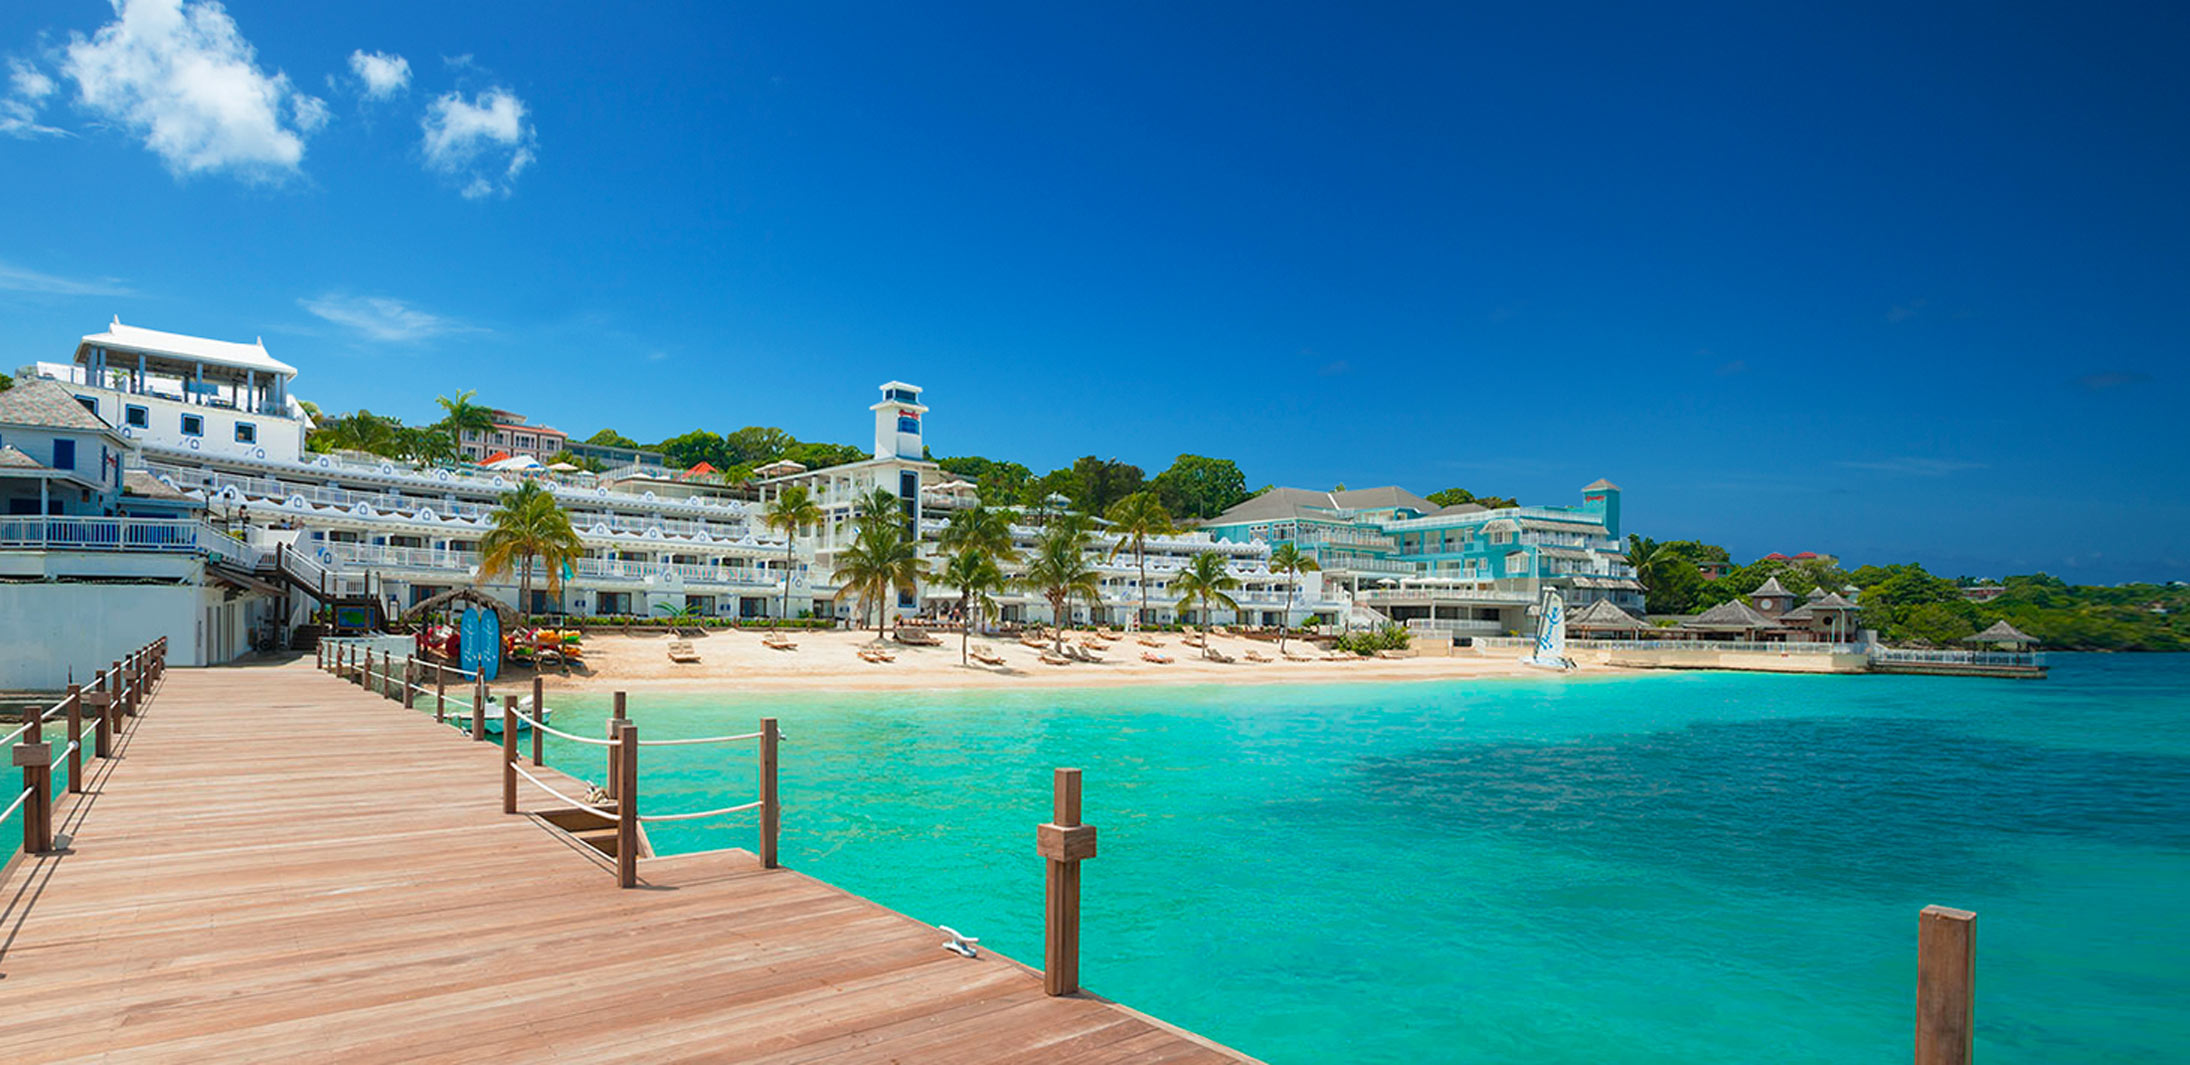 Beaches Resorts - Family Friendly Caribbean All-Inclusive